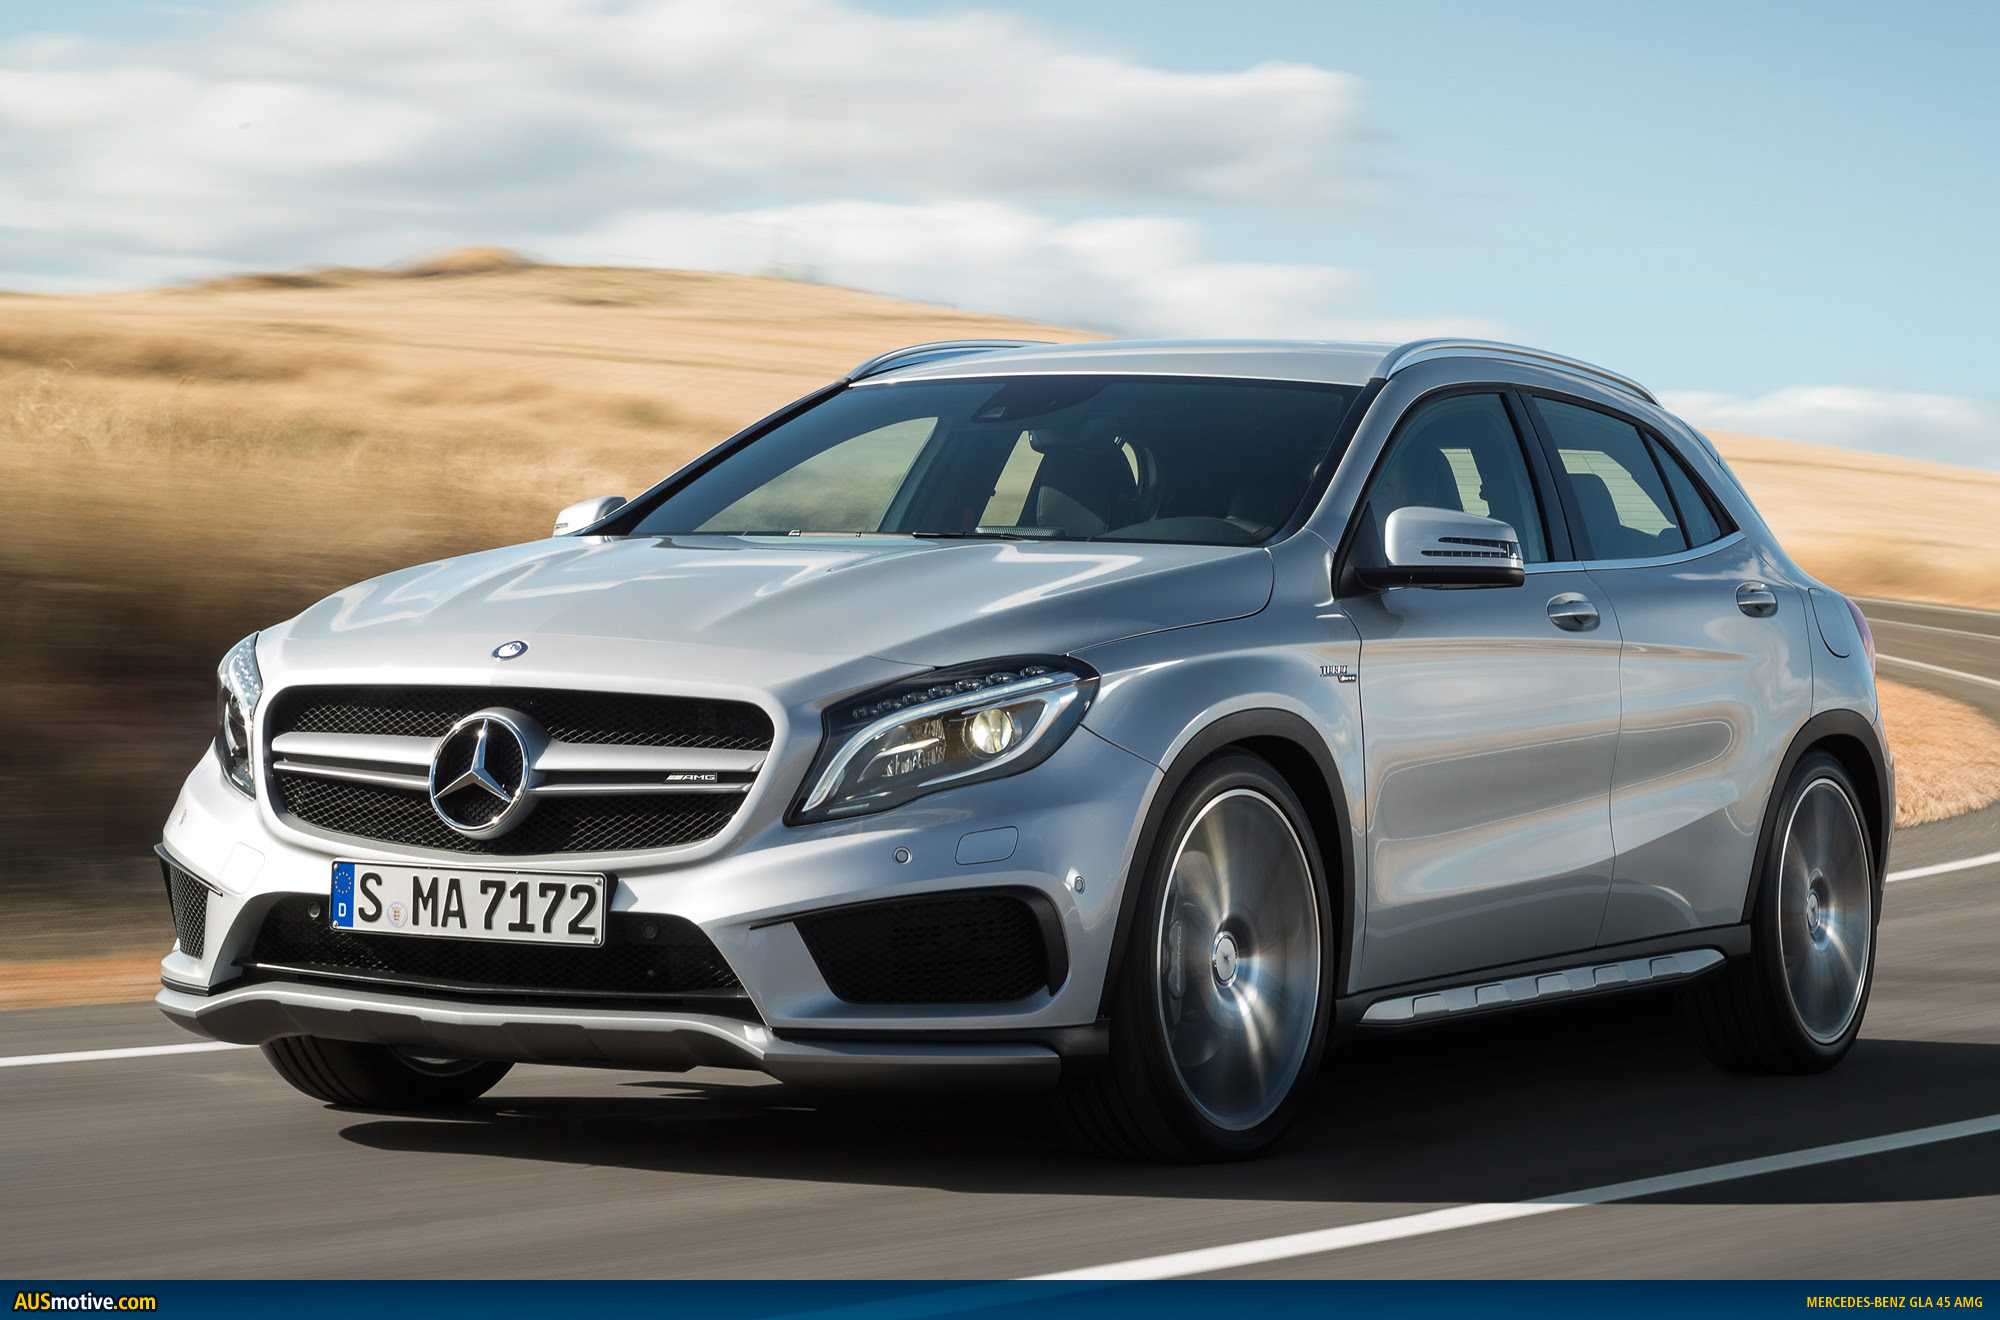 AUSmotive.com » Mercedes-Benz GLA 45 AMG revealed